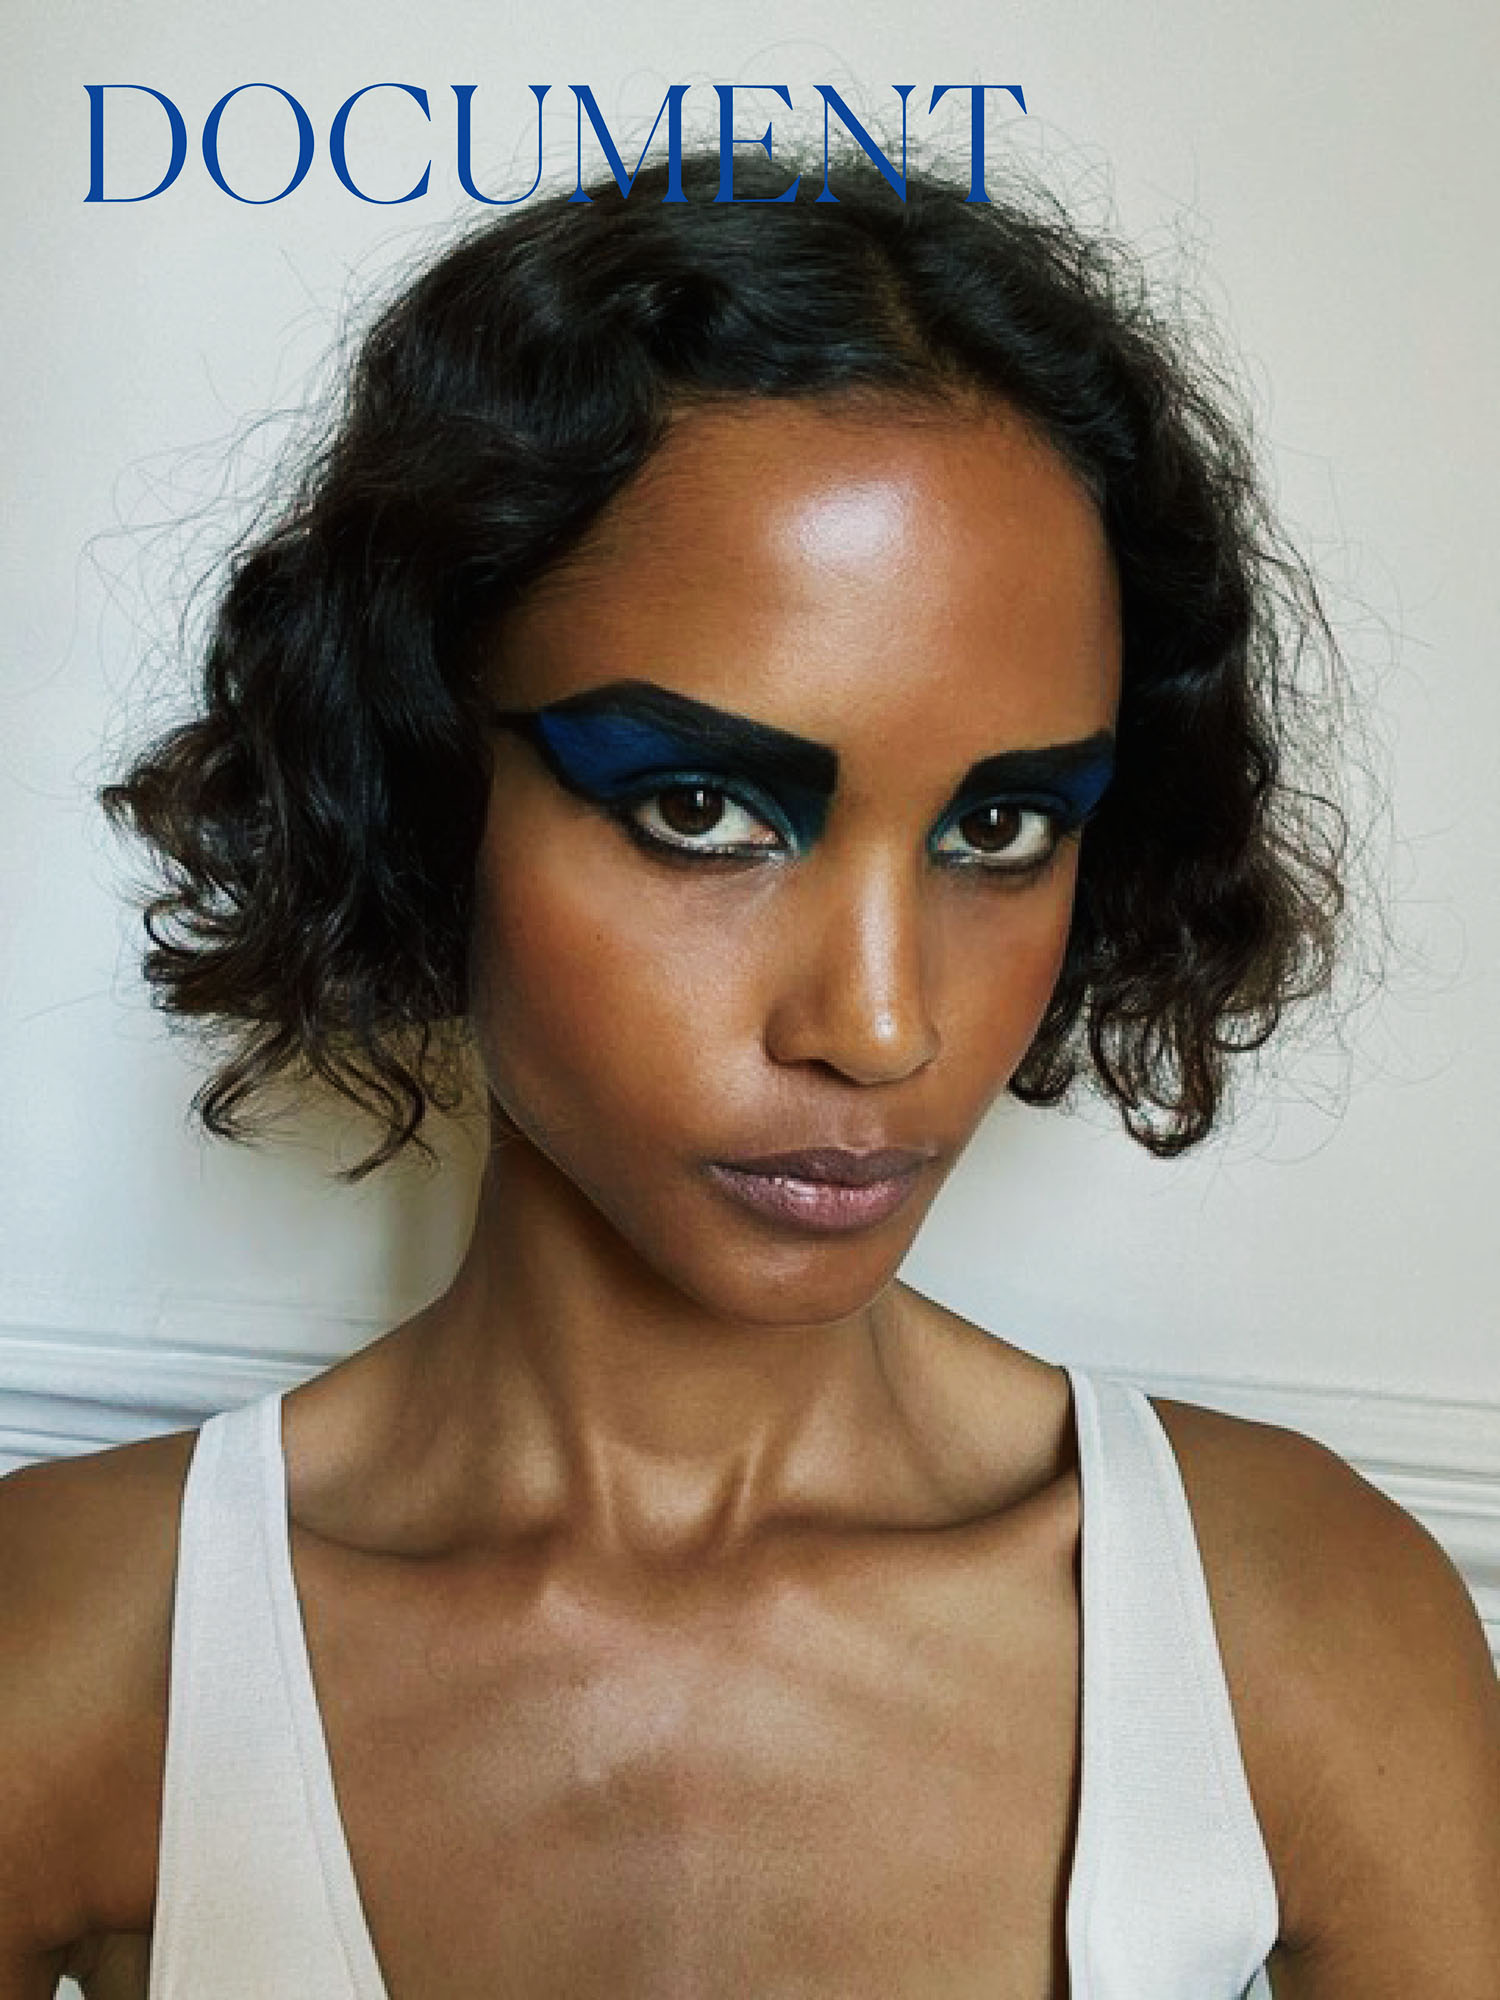 Malaika Holmen revives cinema's most recognizable eye shadow moment